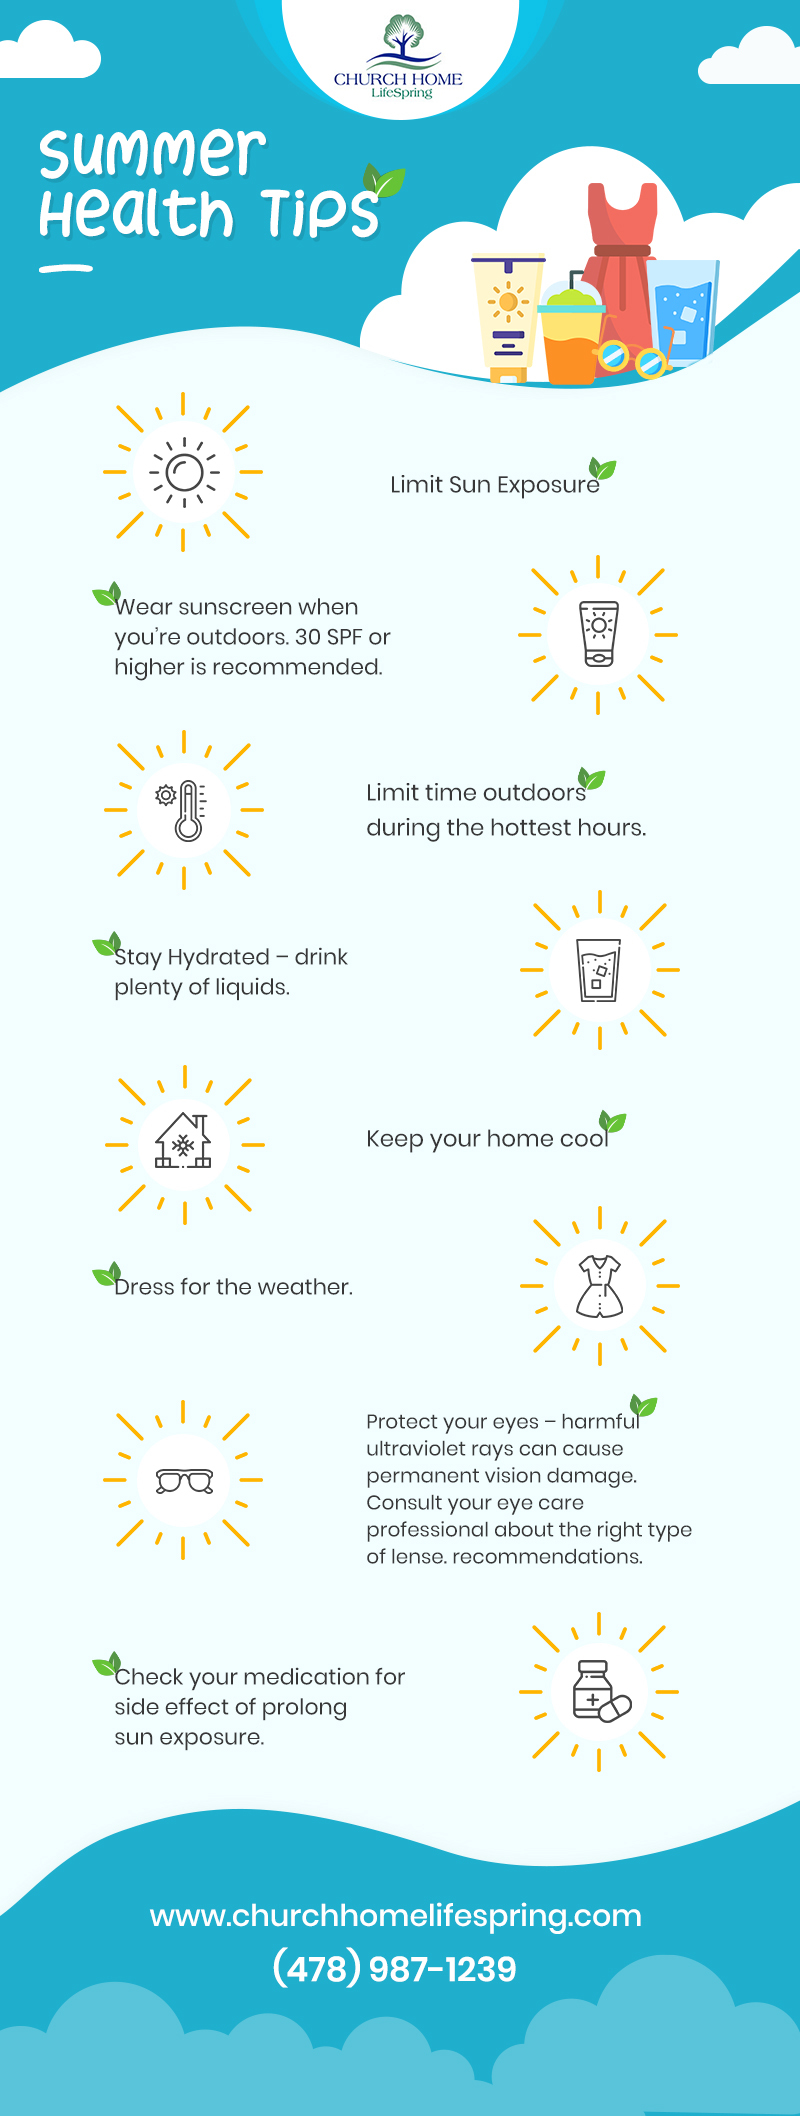 Church_Home_Infographic_Summer Tips